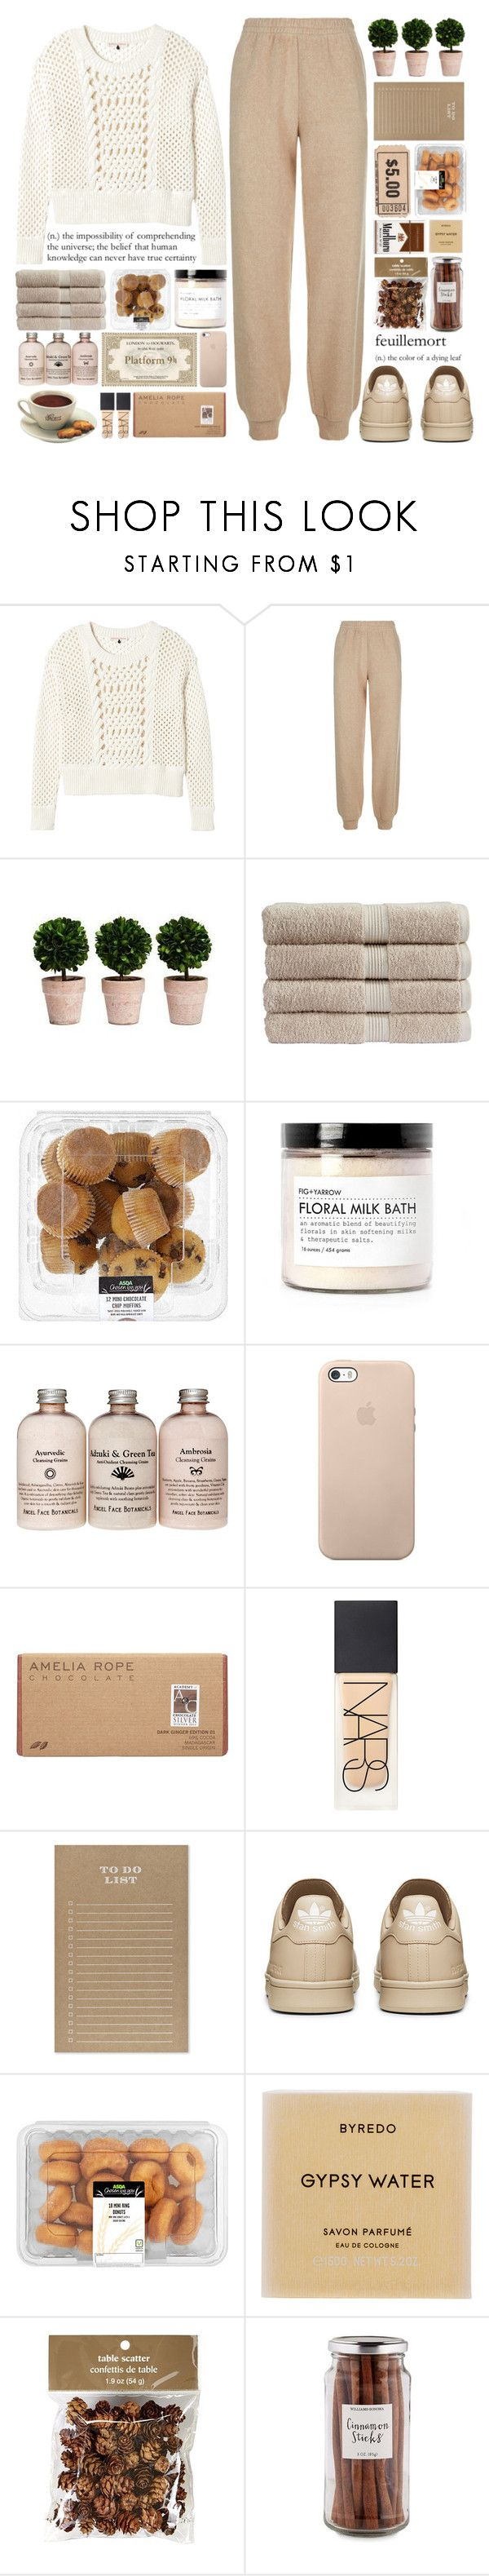 """And if she feels my traces in your hair I'm sorry lord but I don't really care"" by one-styles ❤ liked on Polyvore featuring Rebecca Taylor, See by Chloé, Christy, Fig+Yarrow, Amelia Rose, NARS Cosmetics, Sugar Paper, Byredo, Pier 1 Imports and Williams-Sonoma"